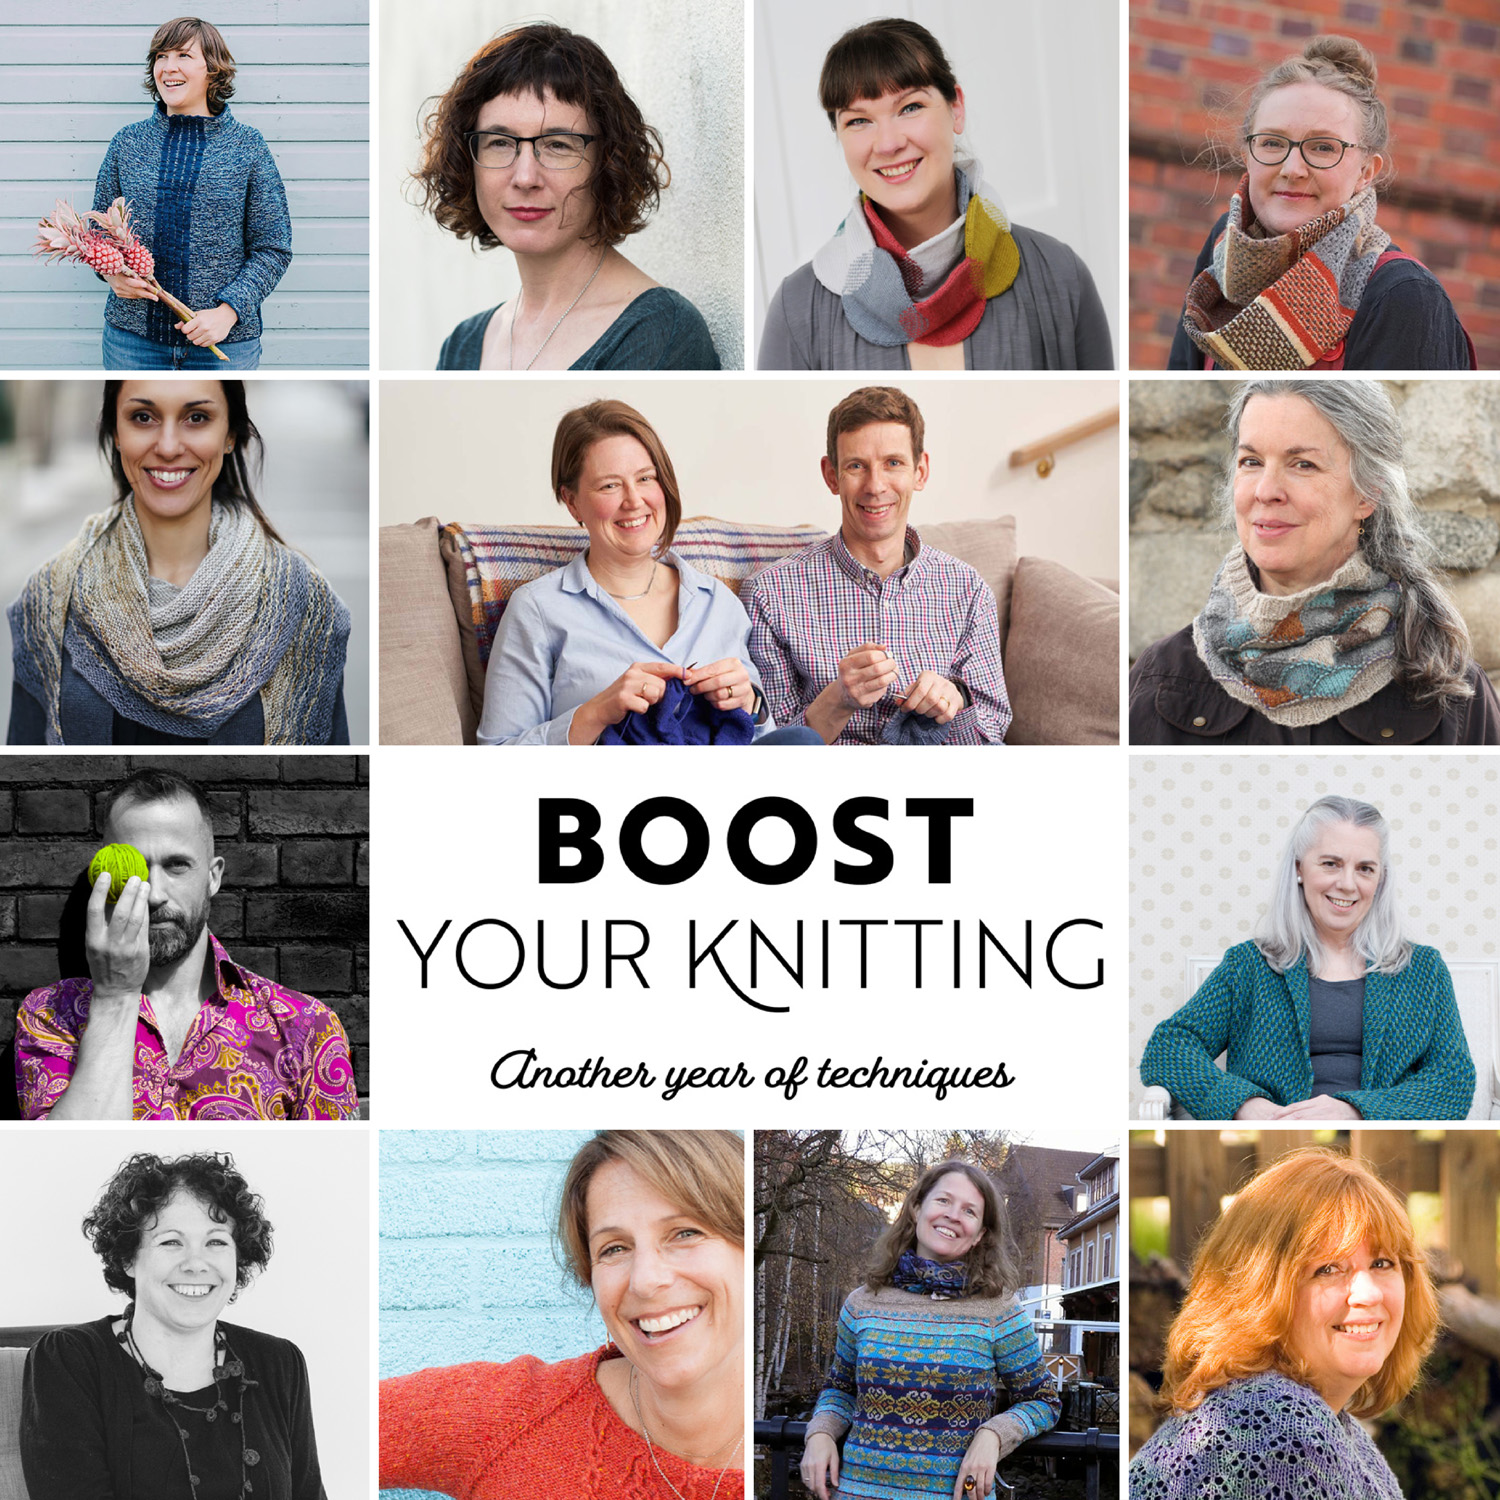 Boost Your Knitting Designer Graphic_v2_1500sq.jpg